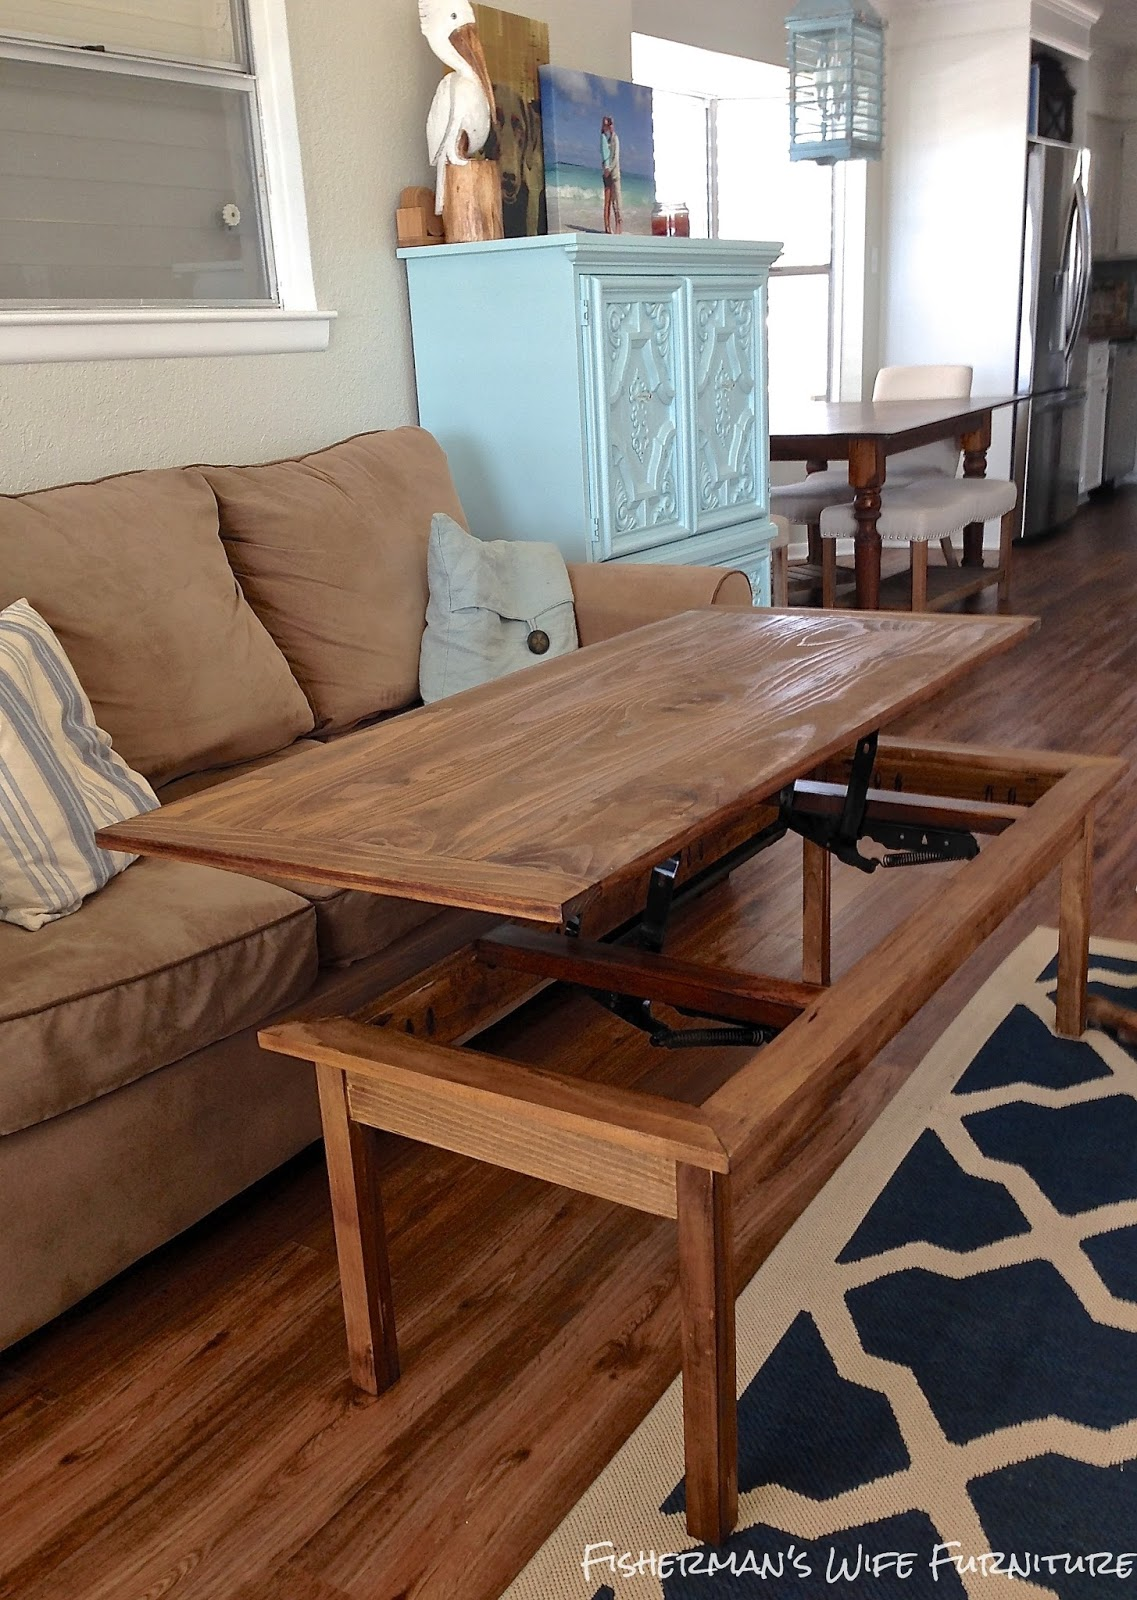 Fisherman's Wife Furniture: DIY Coffee Table